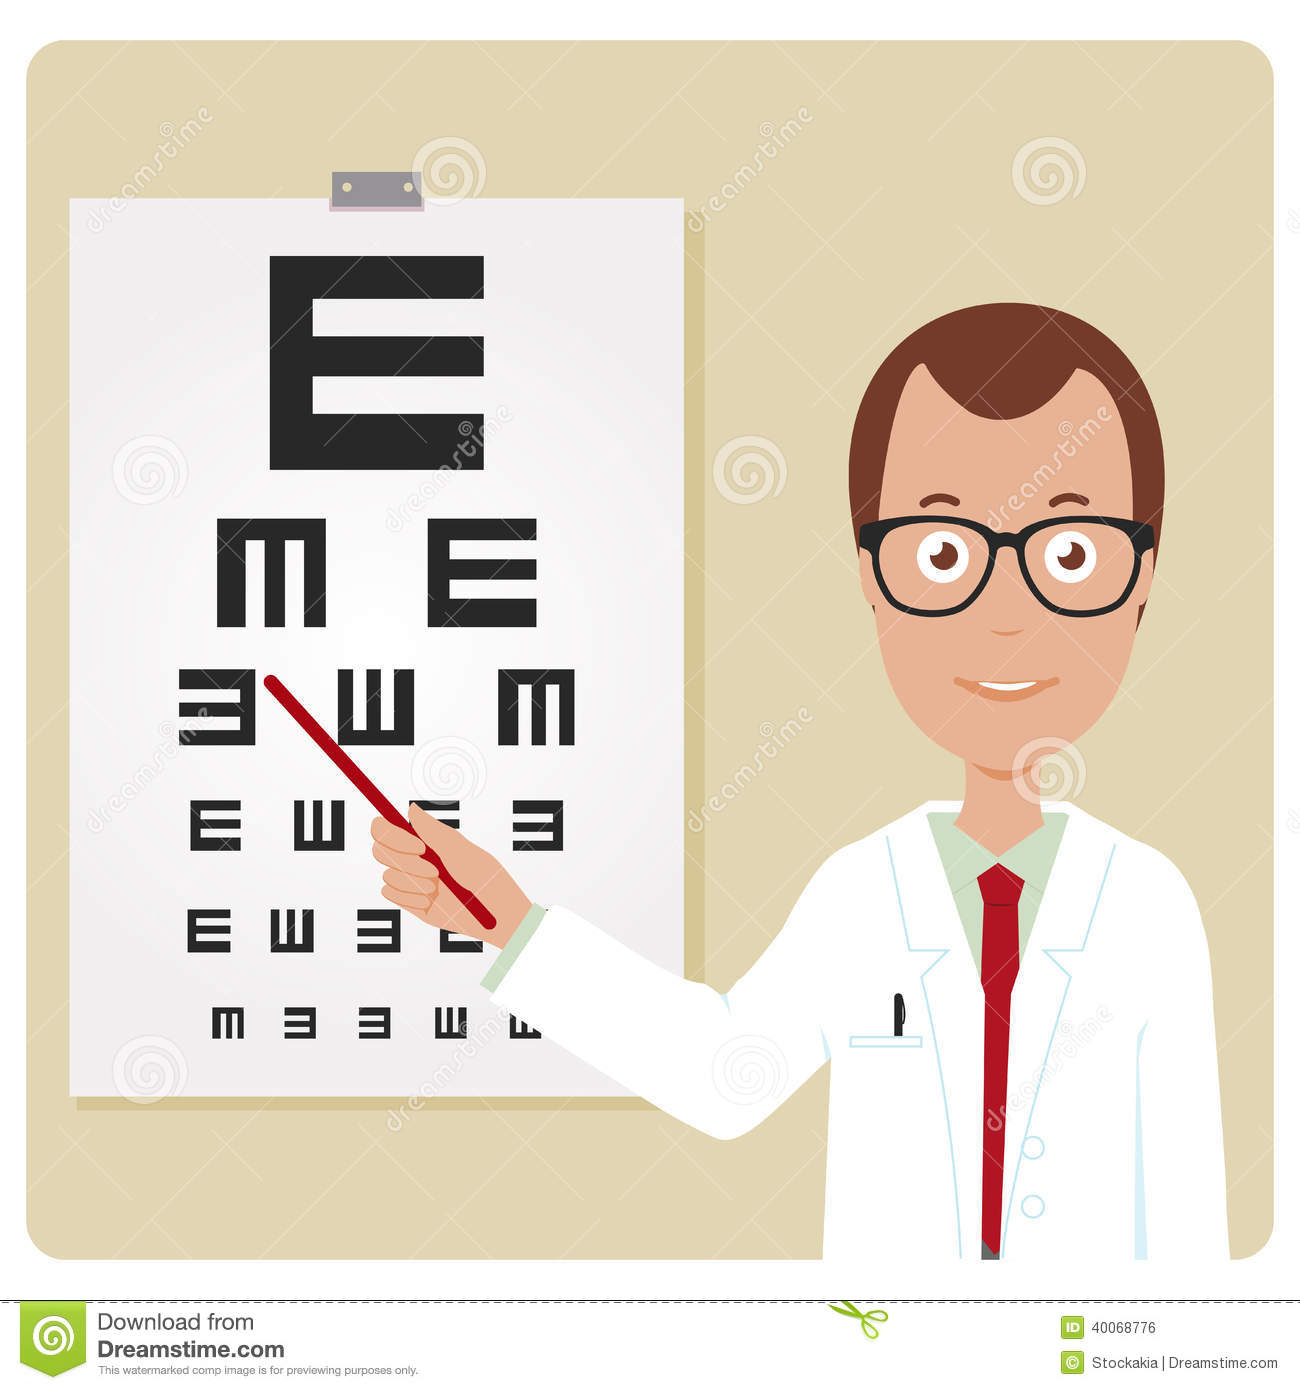 An ophthalmologist examining a patient using the tumbling e eye chart.